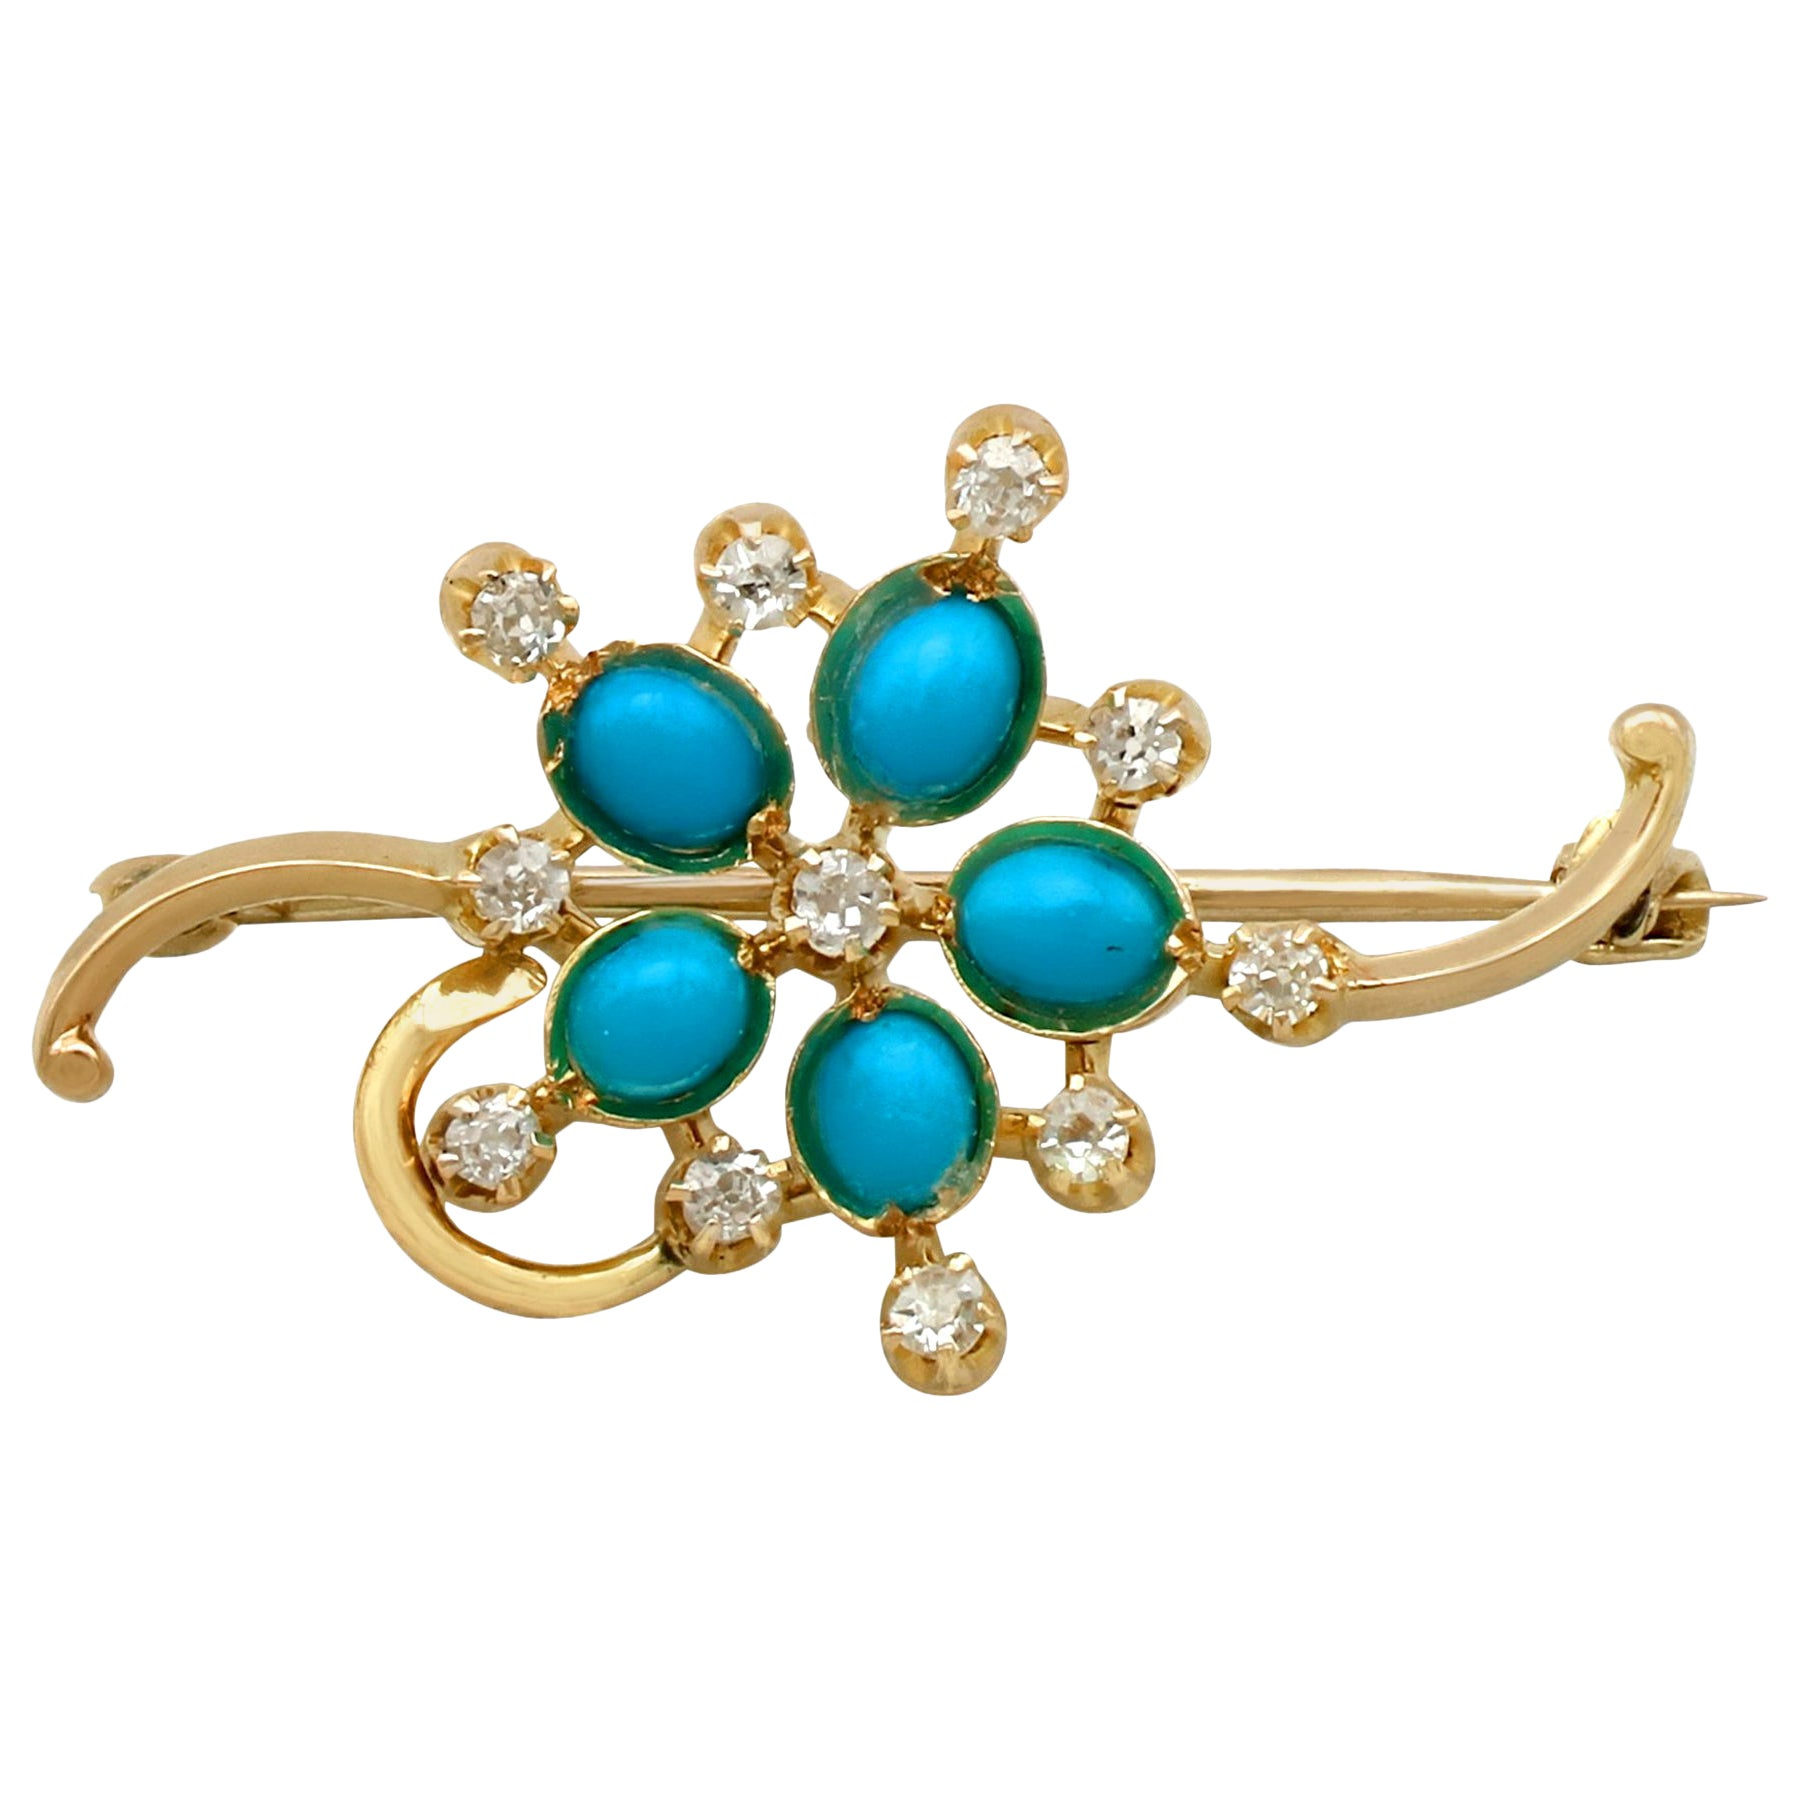 1940s Turquoise and Diamond Yellow Gold Bar Brooch